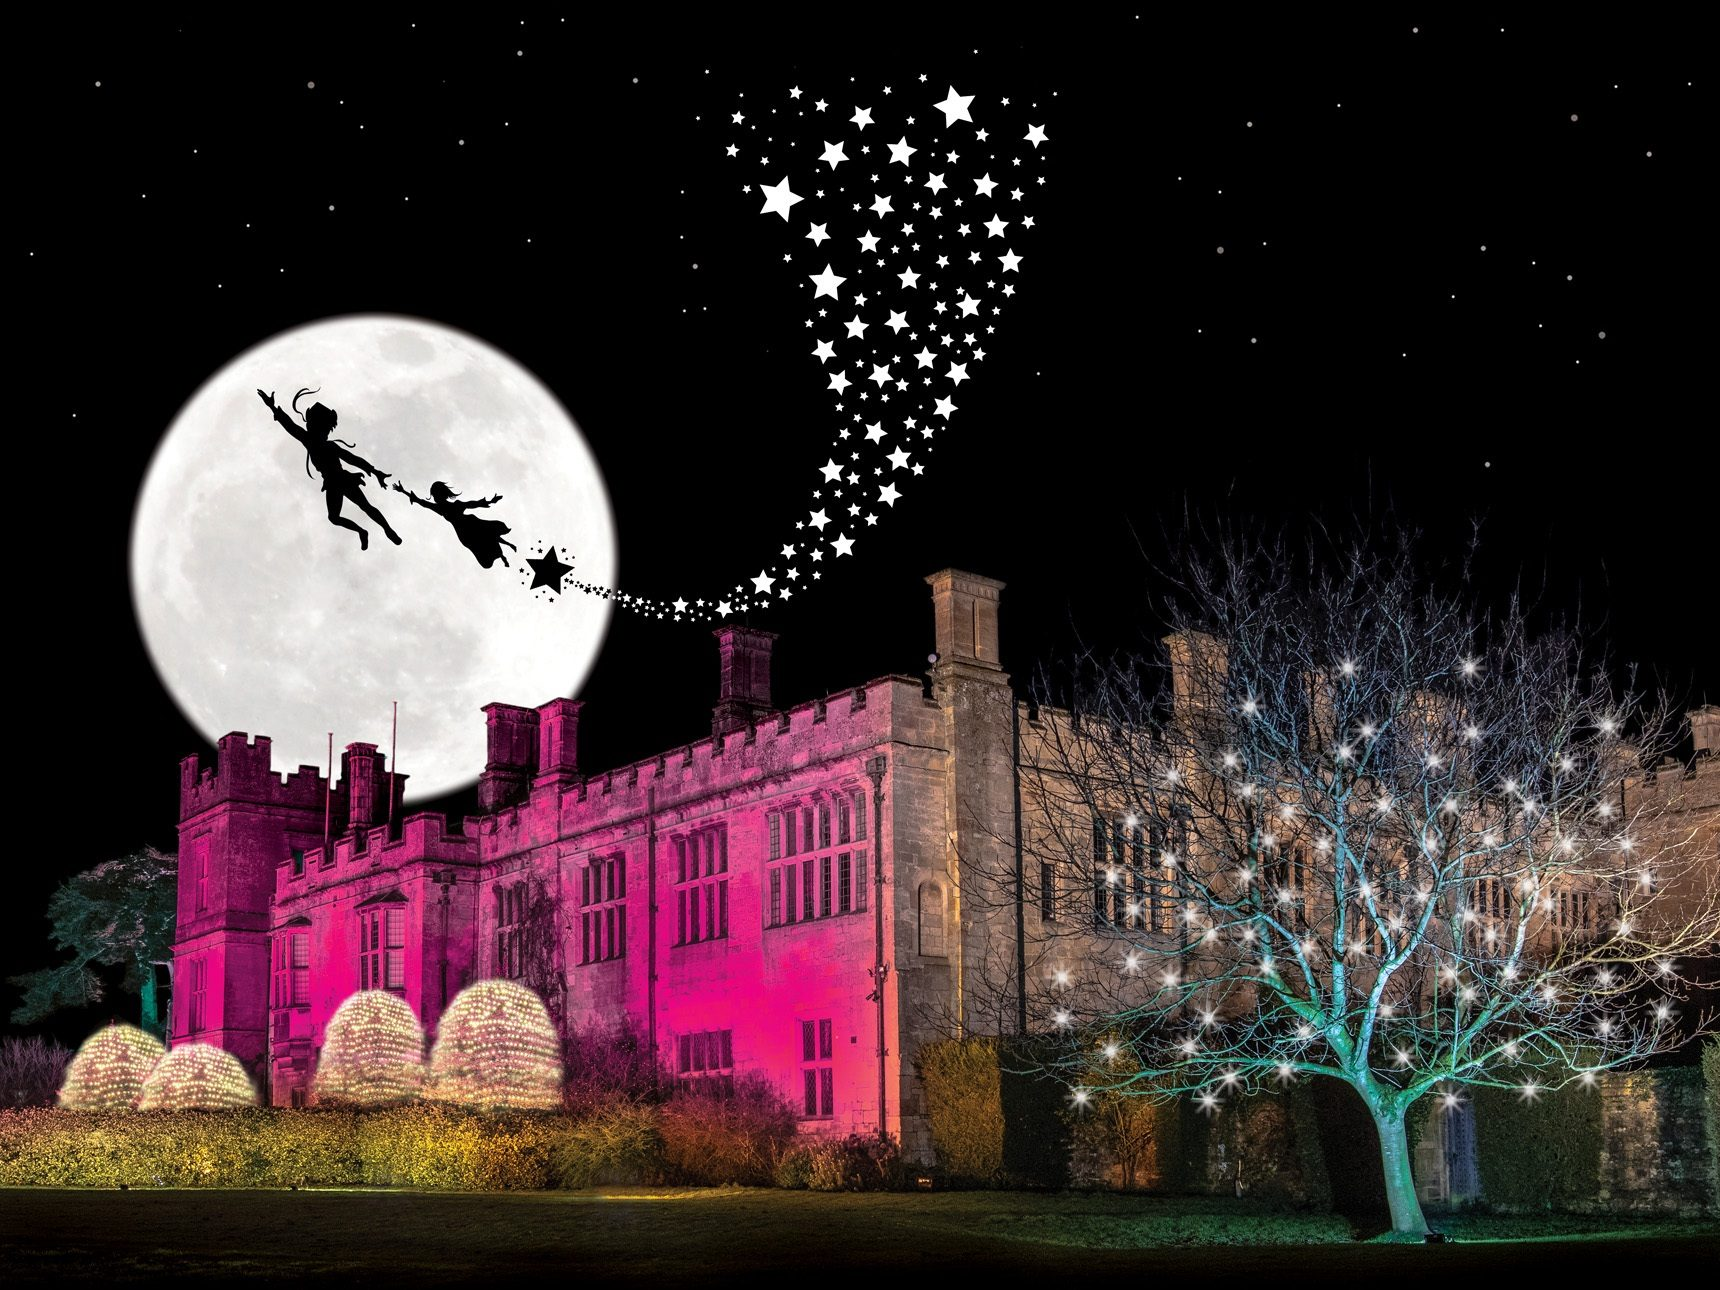 Peter Pan silhouette flying over Sudeley Castle